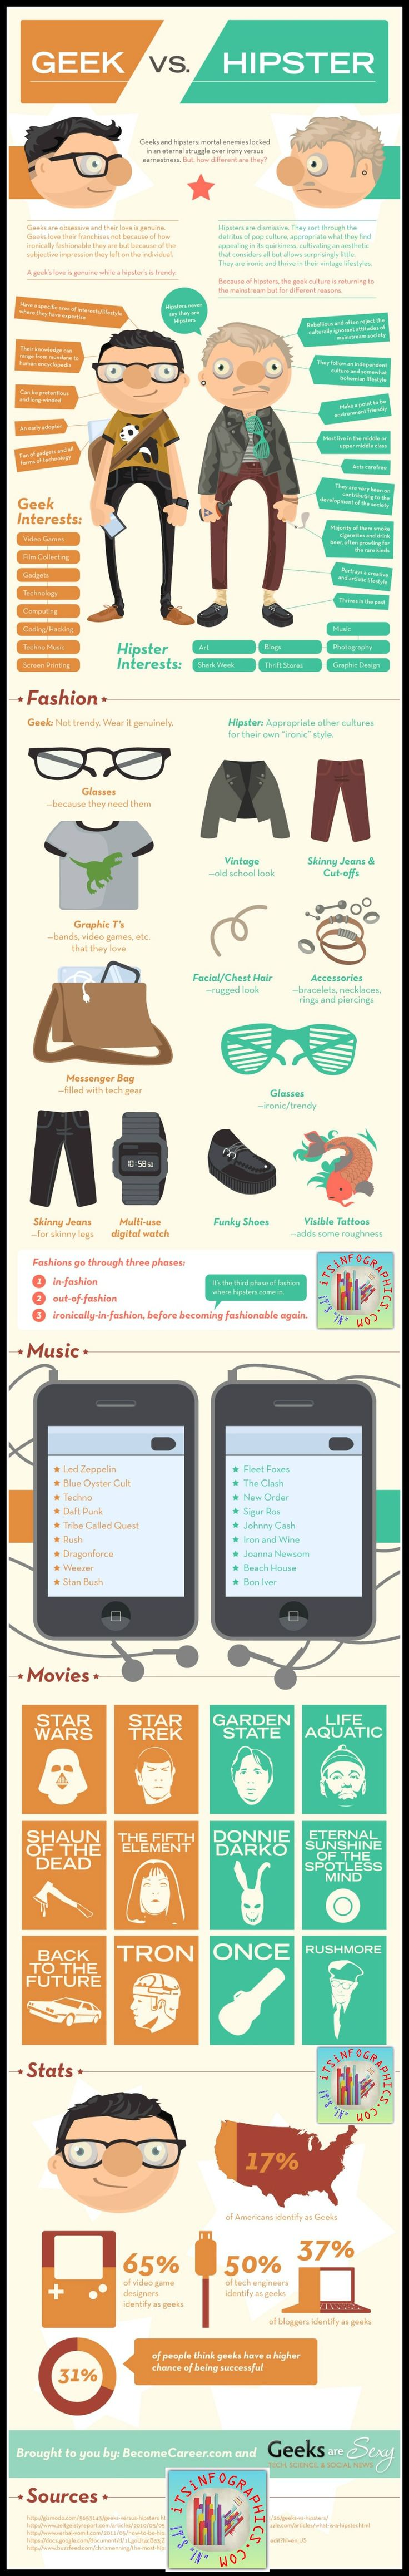 Geek vs. Hipster: Which one are you?